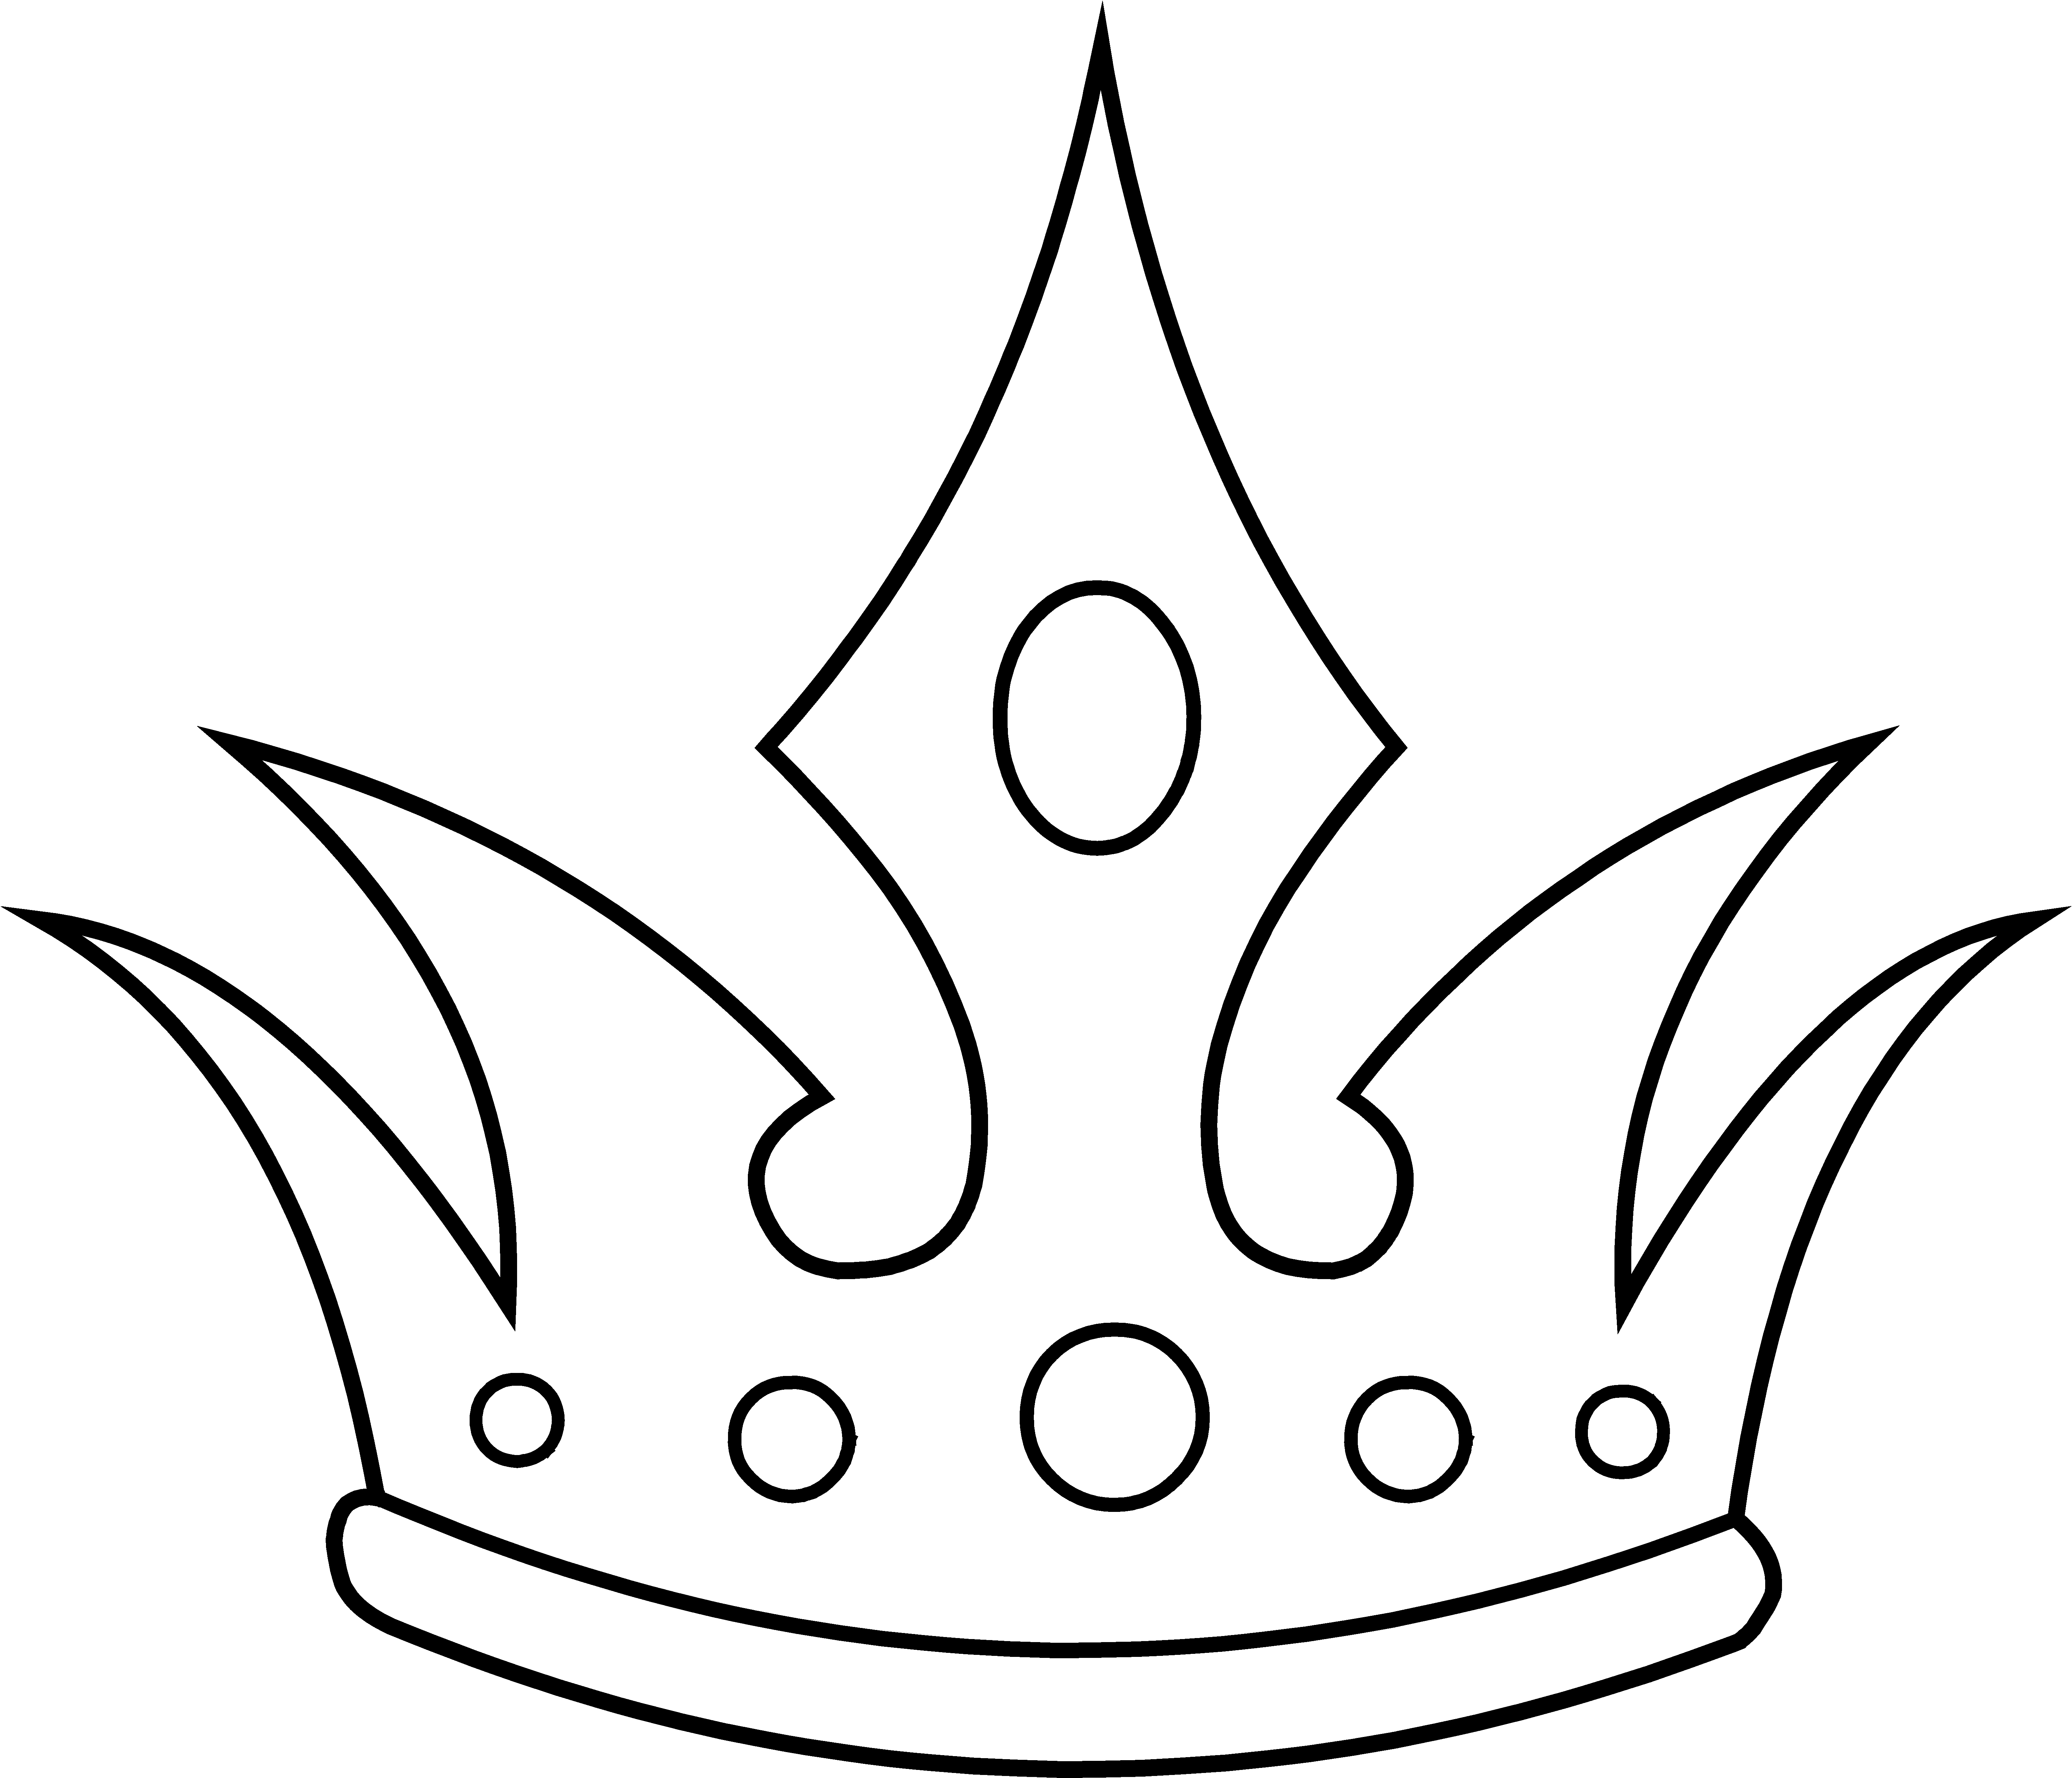 Sleeping beauty crown clipart black and white vector freeuse Black And White Crown | Free Download Clip Art | Free Clip Art ... vector freeuse